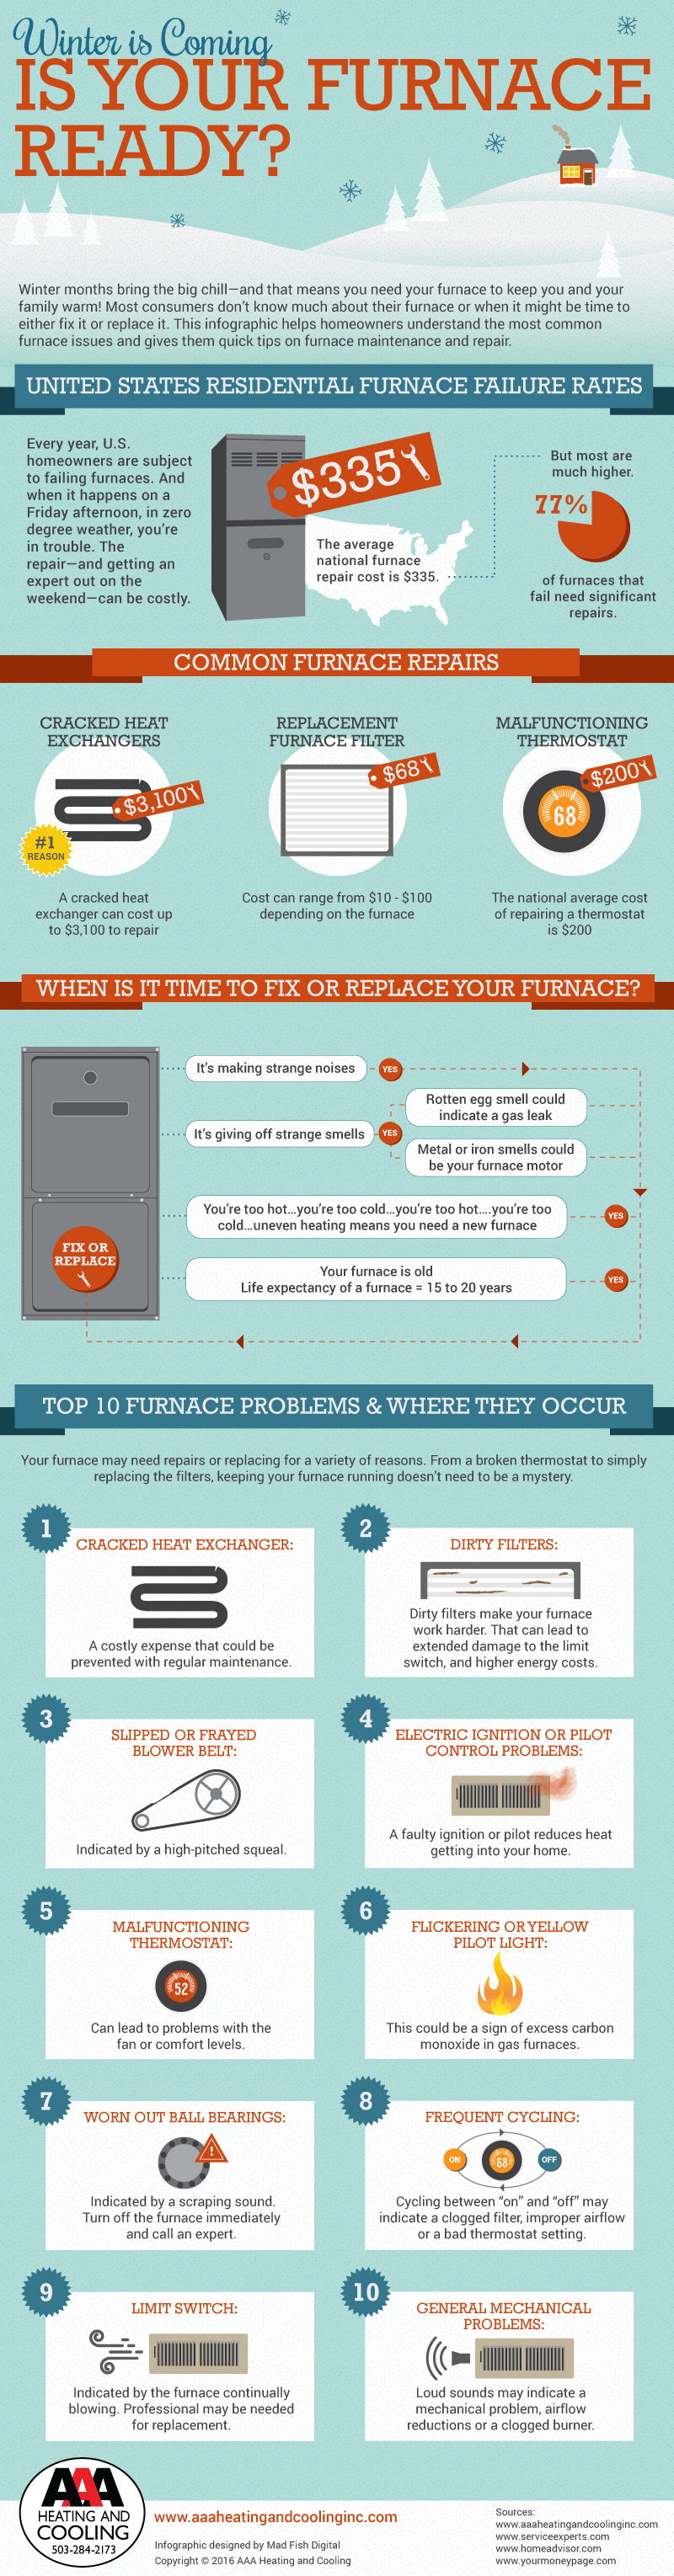 Winter is Coming – Is Your Furnace Ready? #infographic #Home #Home Furnace #Winter, Winter is Coming